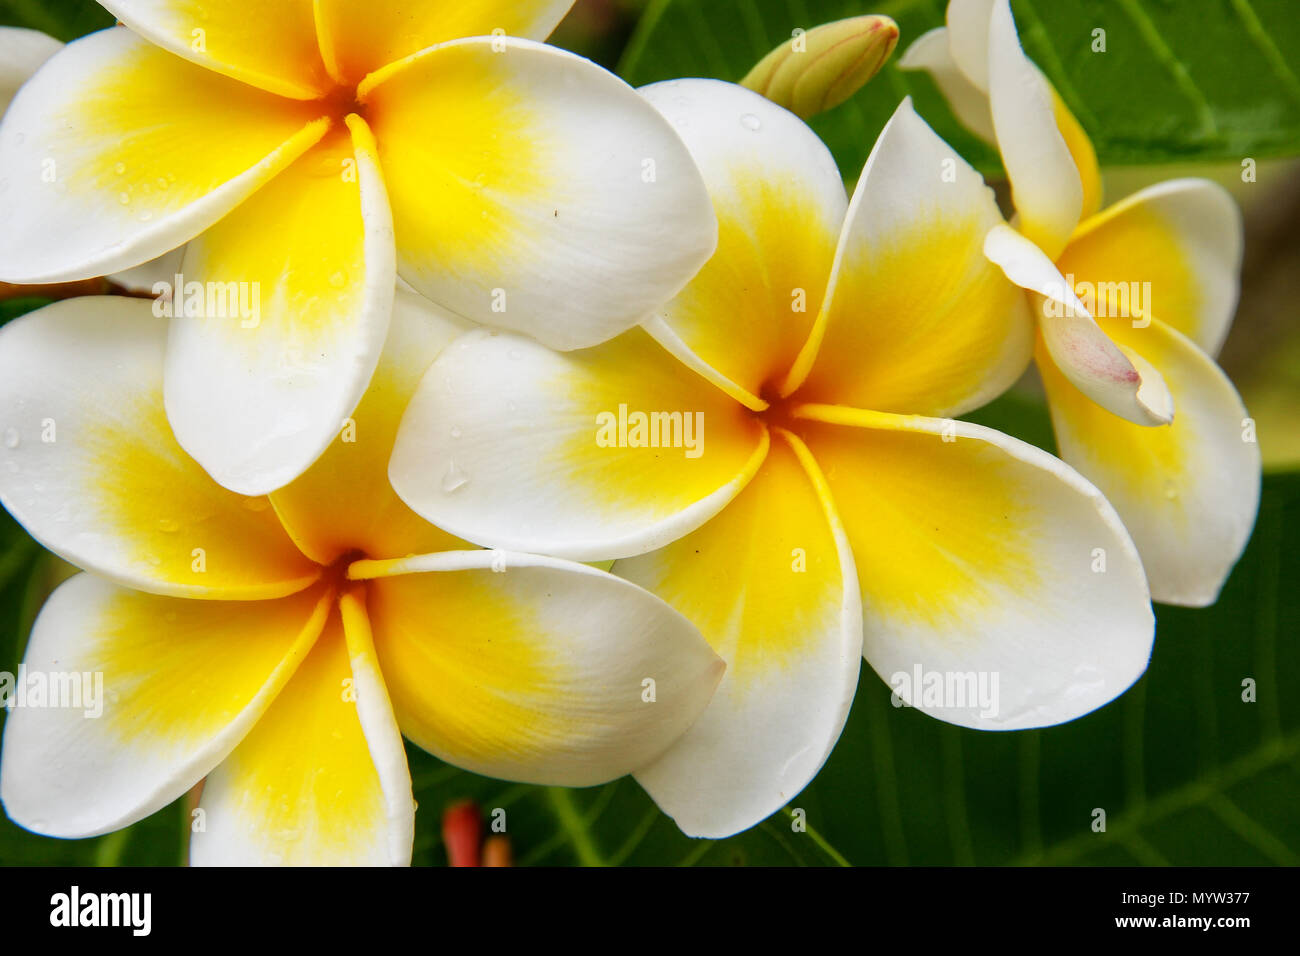 White And Yellow Plumeria Flowers On A Tree Stock Photo 189250747